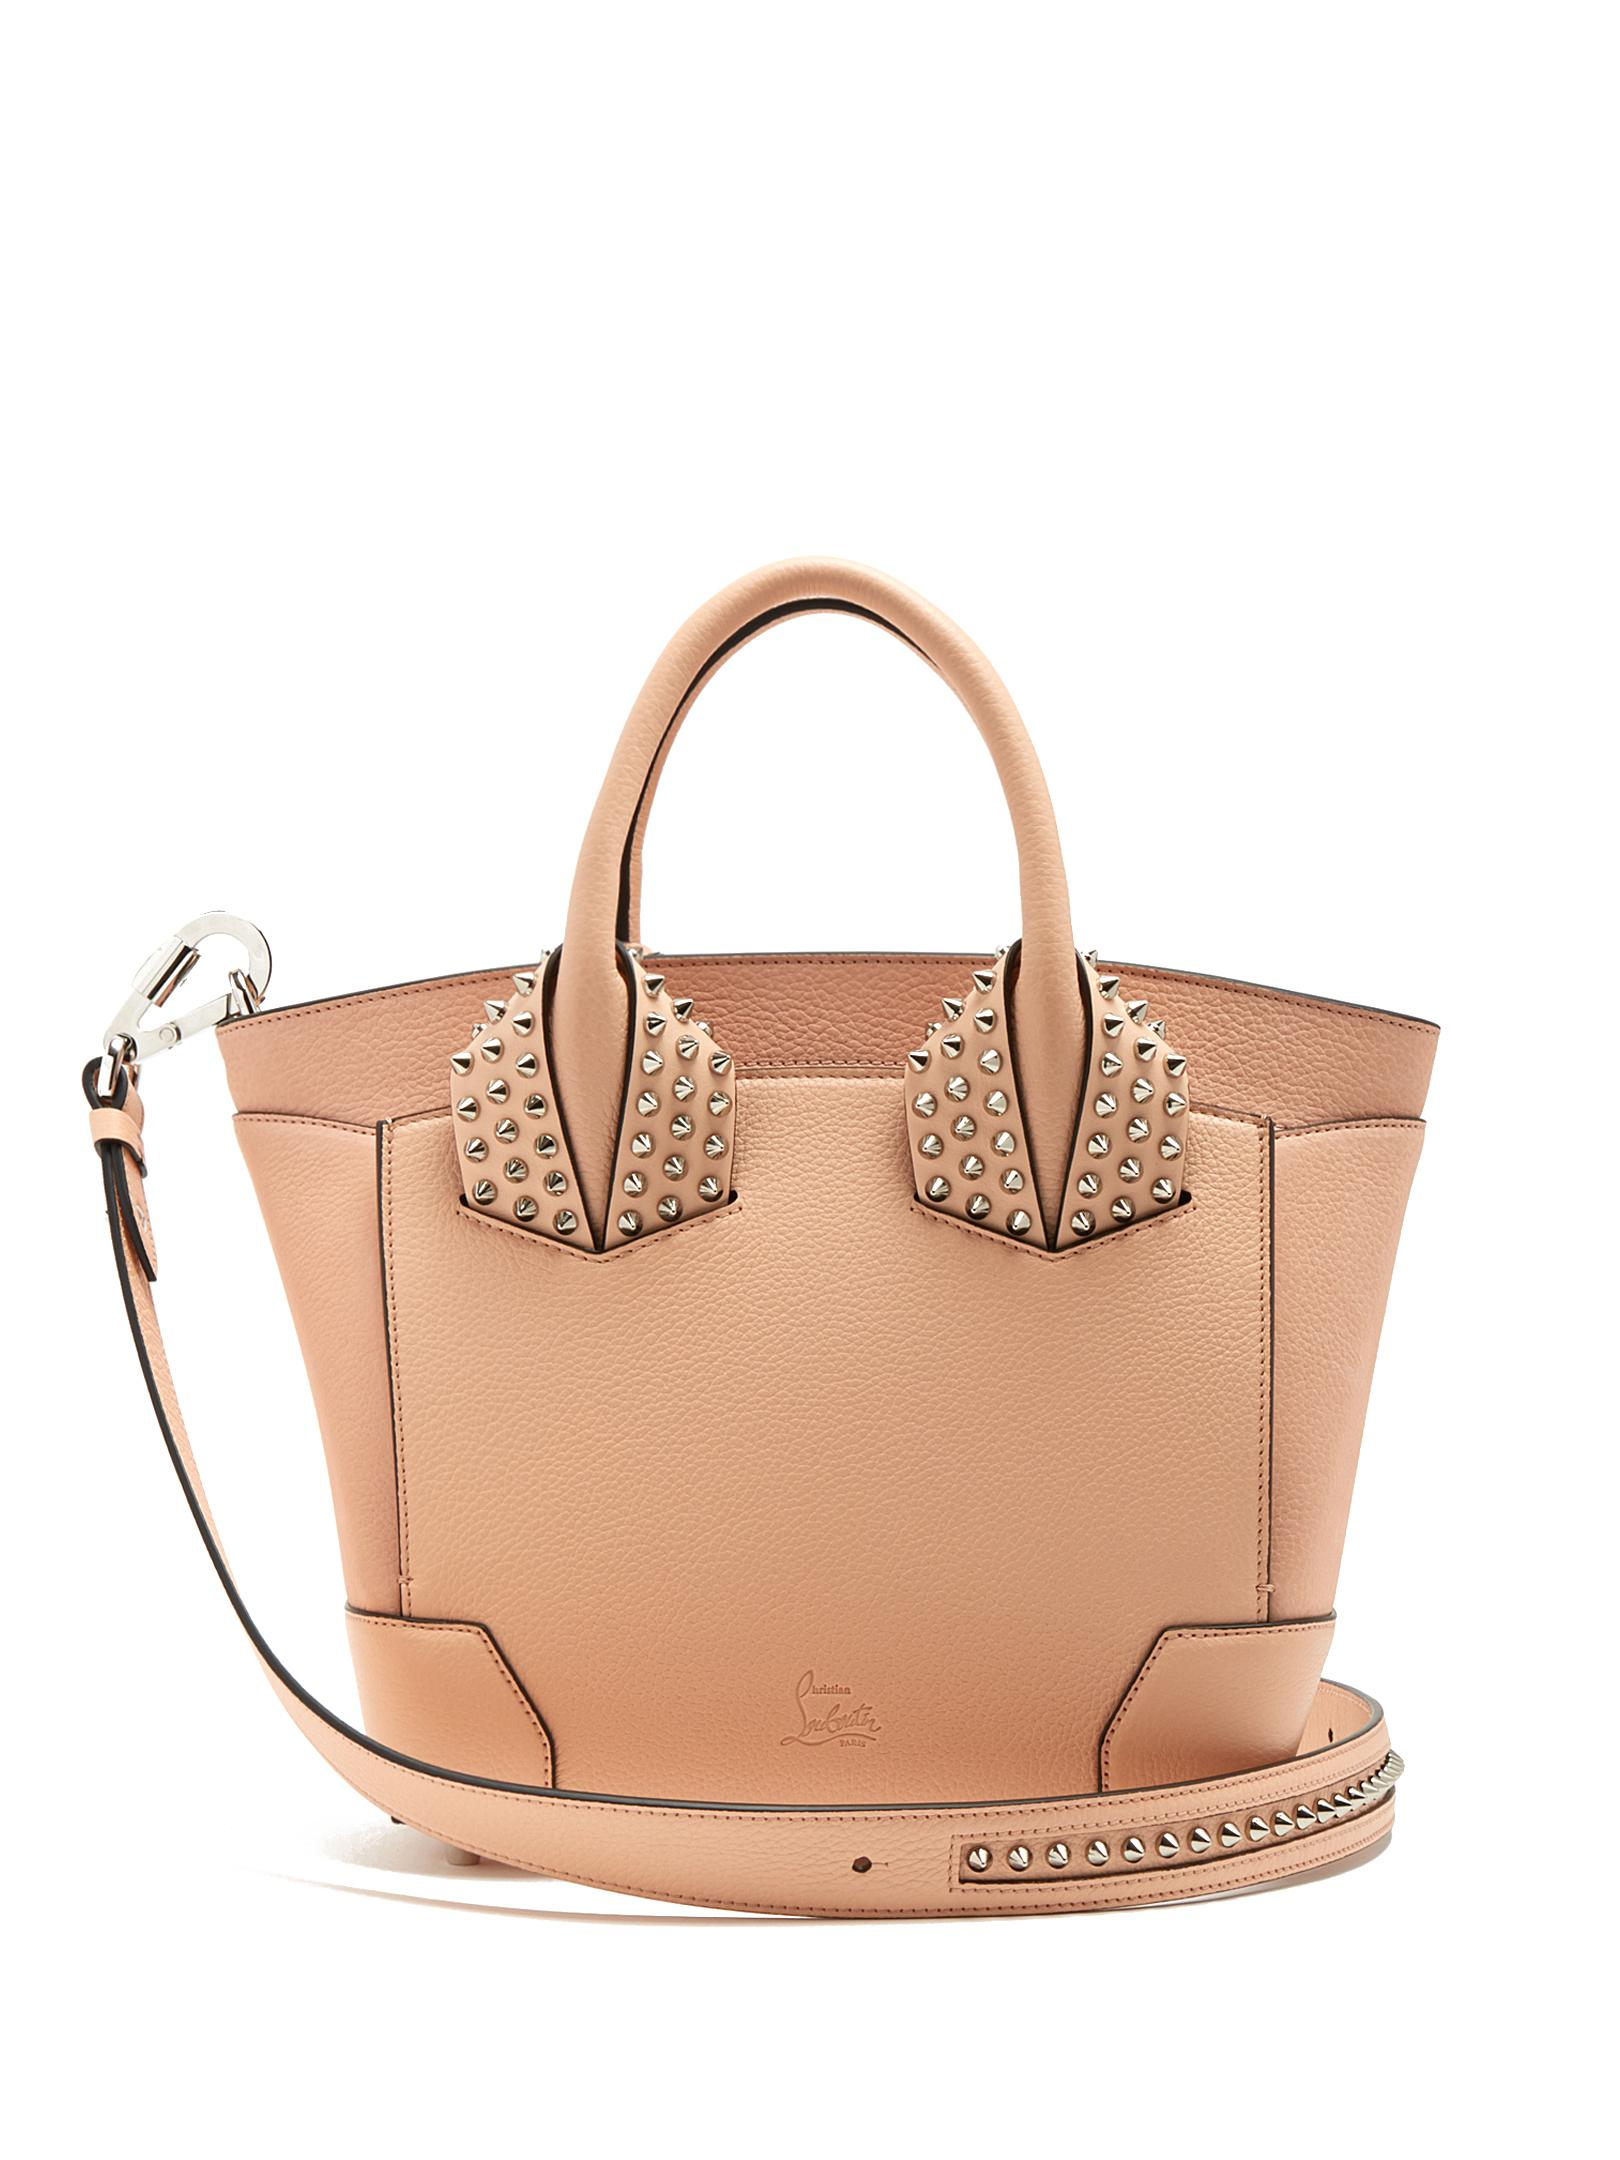 98c64e59b9f Christian Louboutin Eloise Small Leather Cross-body Bag in Pink - Lyst